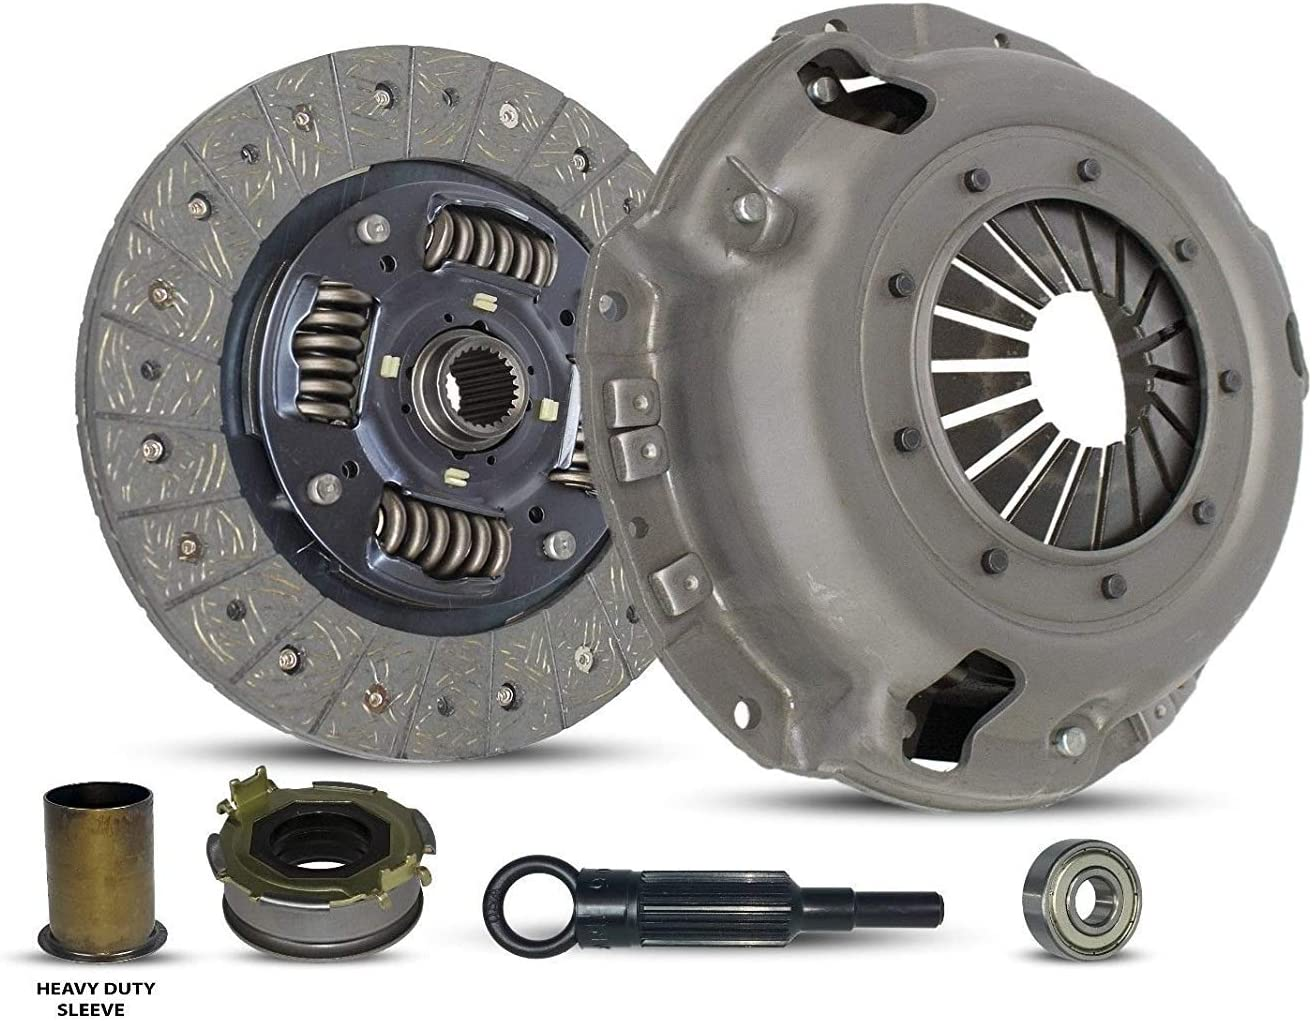 25% OFF Clutch Kit And Sleeve Compatible Forester X Impreza Cash special price With Legacy